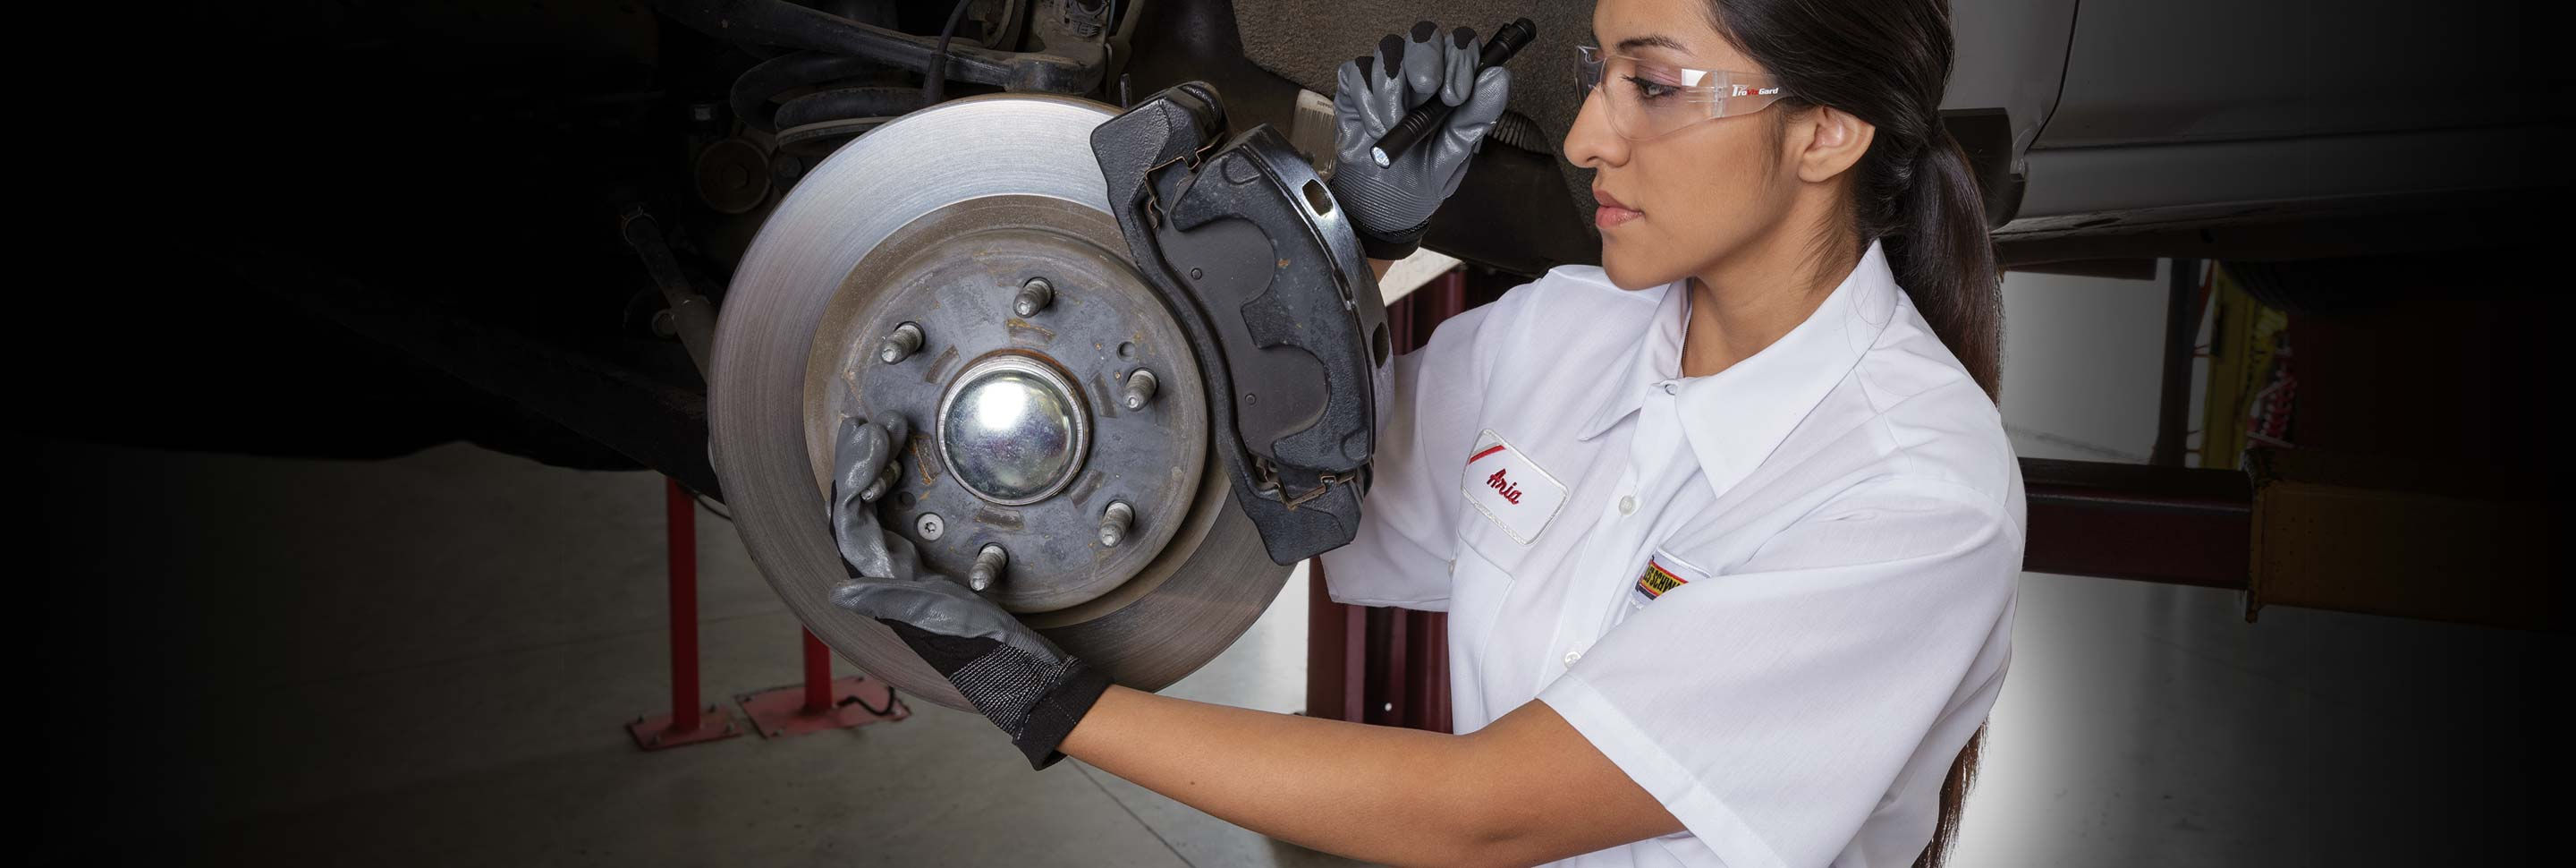 A Les Schwab technician inspecting a vehicle's brakes with a flashlight and protective glasses